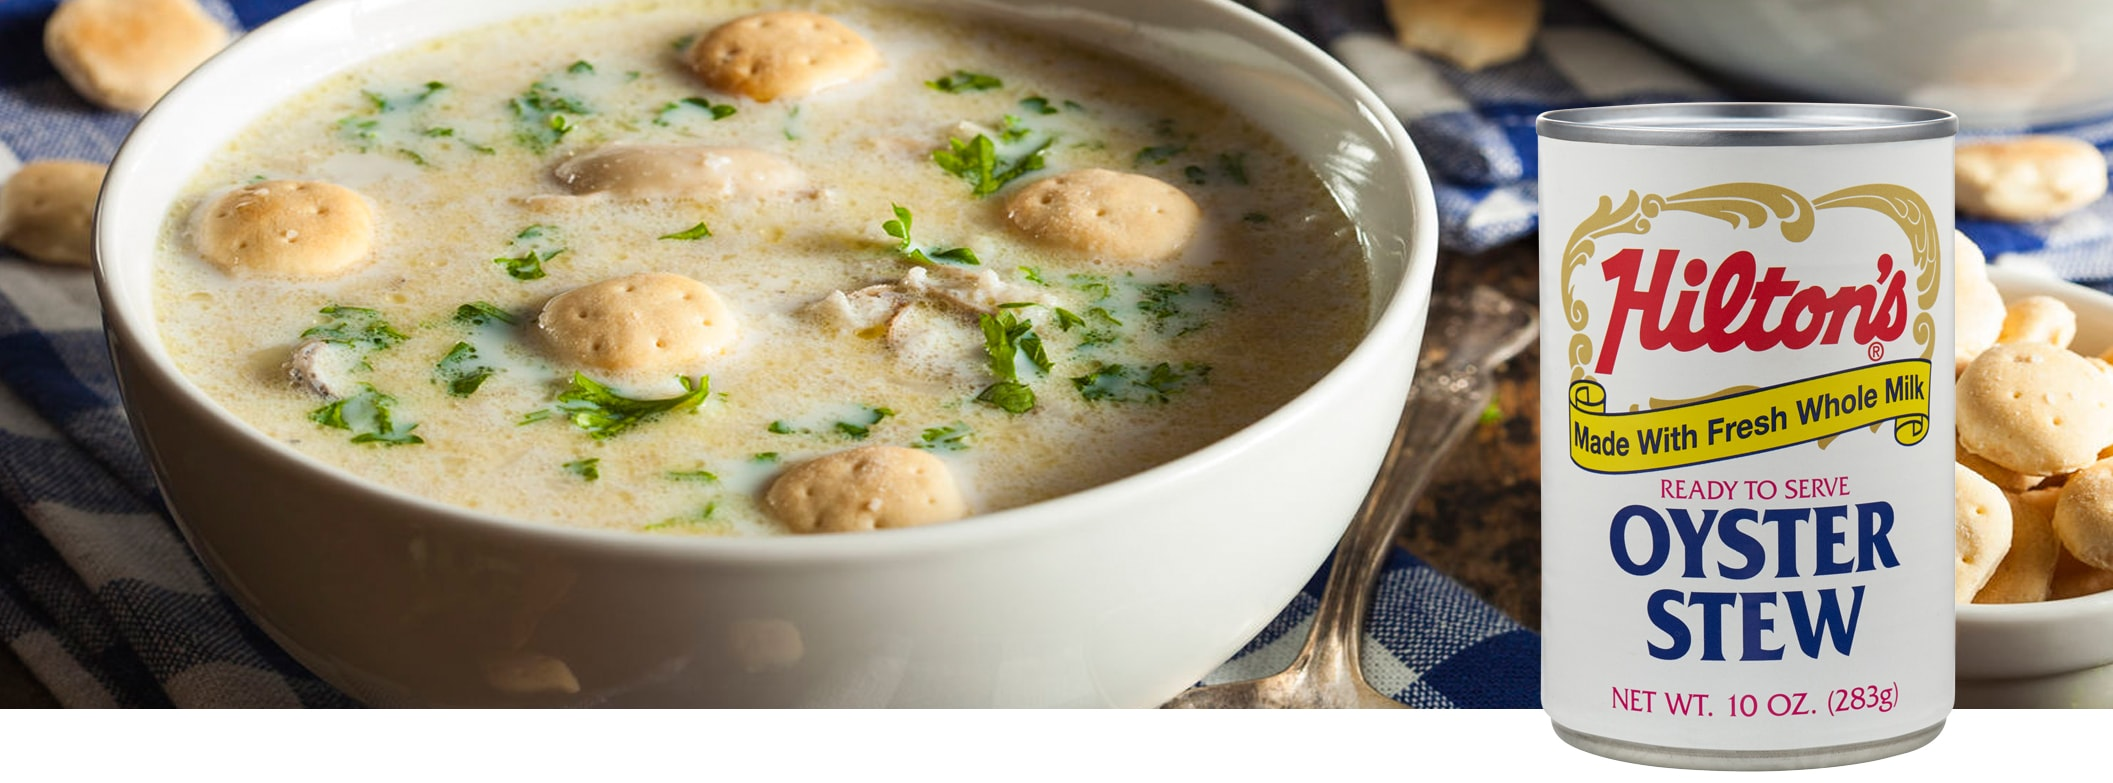 Hilton S Oyster Stew Boone Brands